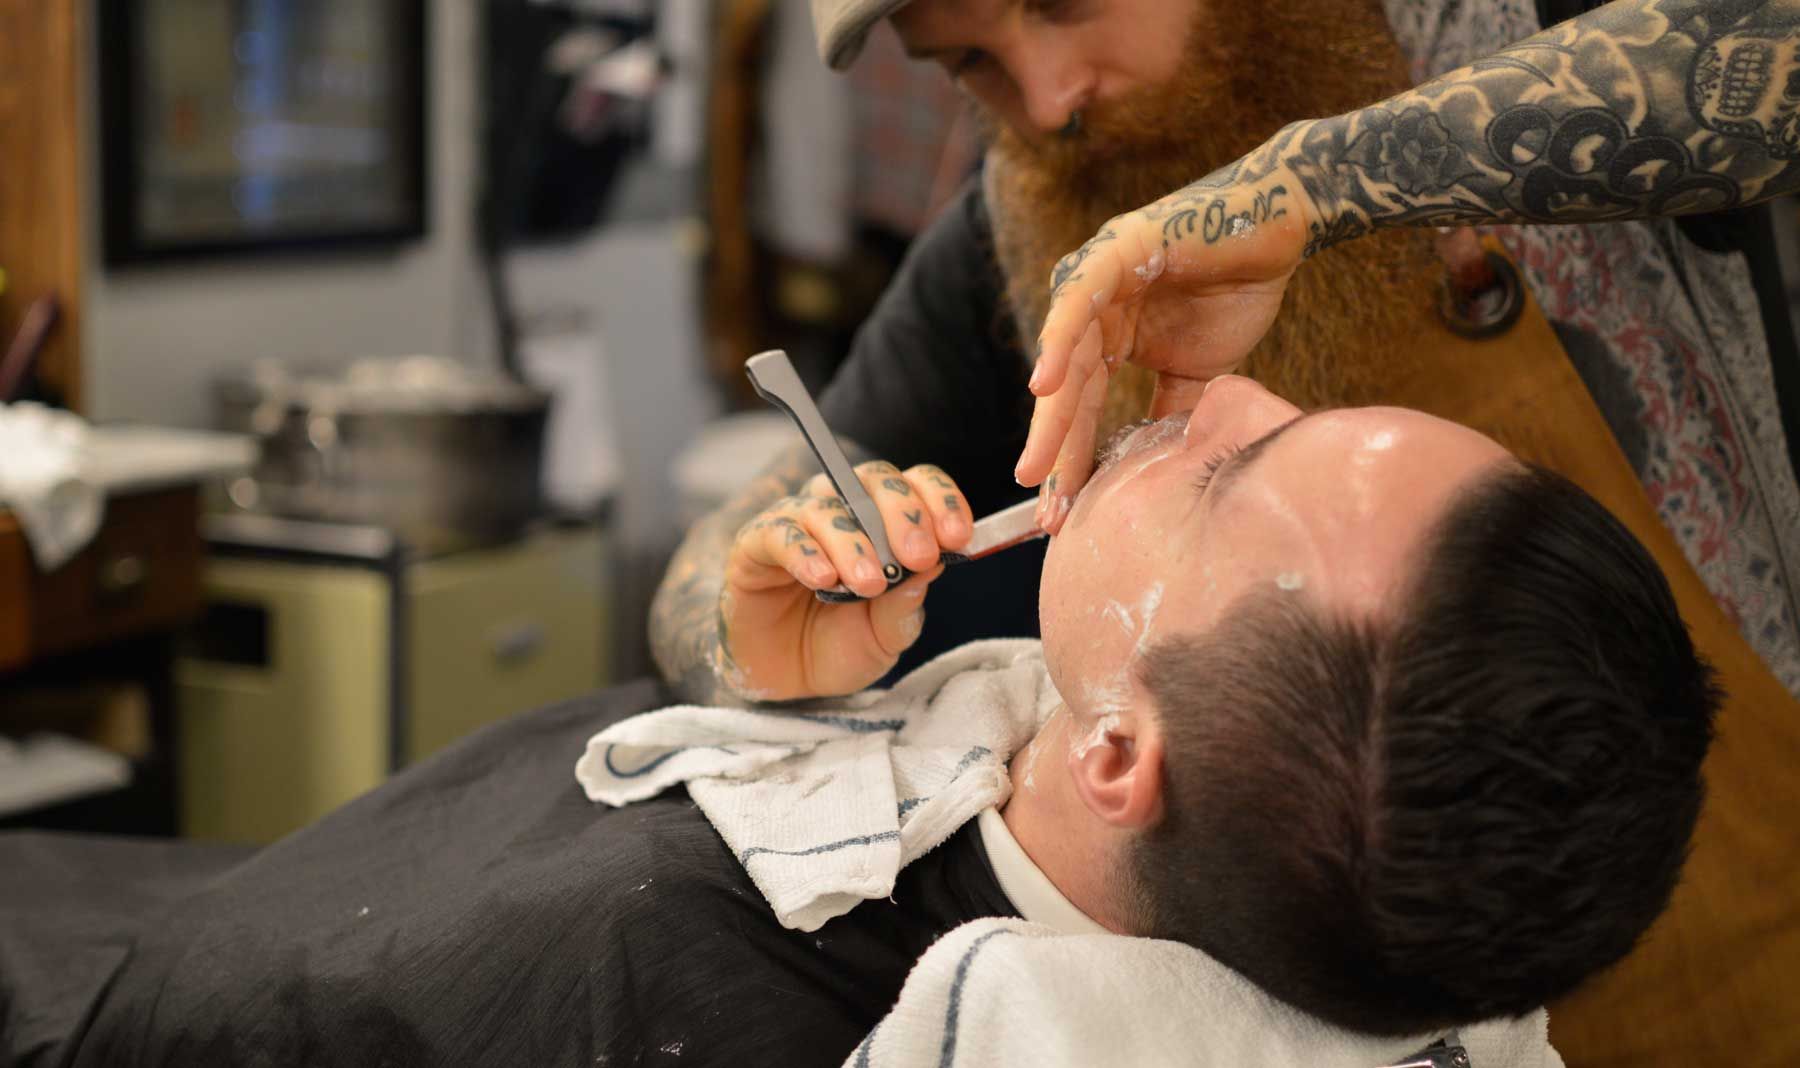 Chandler getting a close shave @ Barber Co., Vancouver, BC